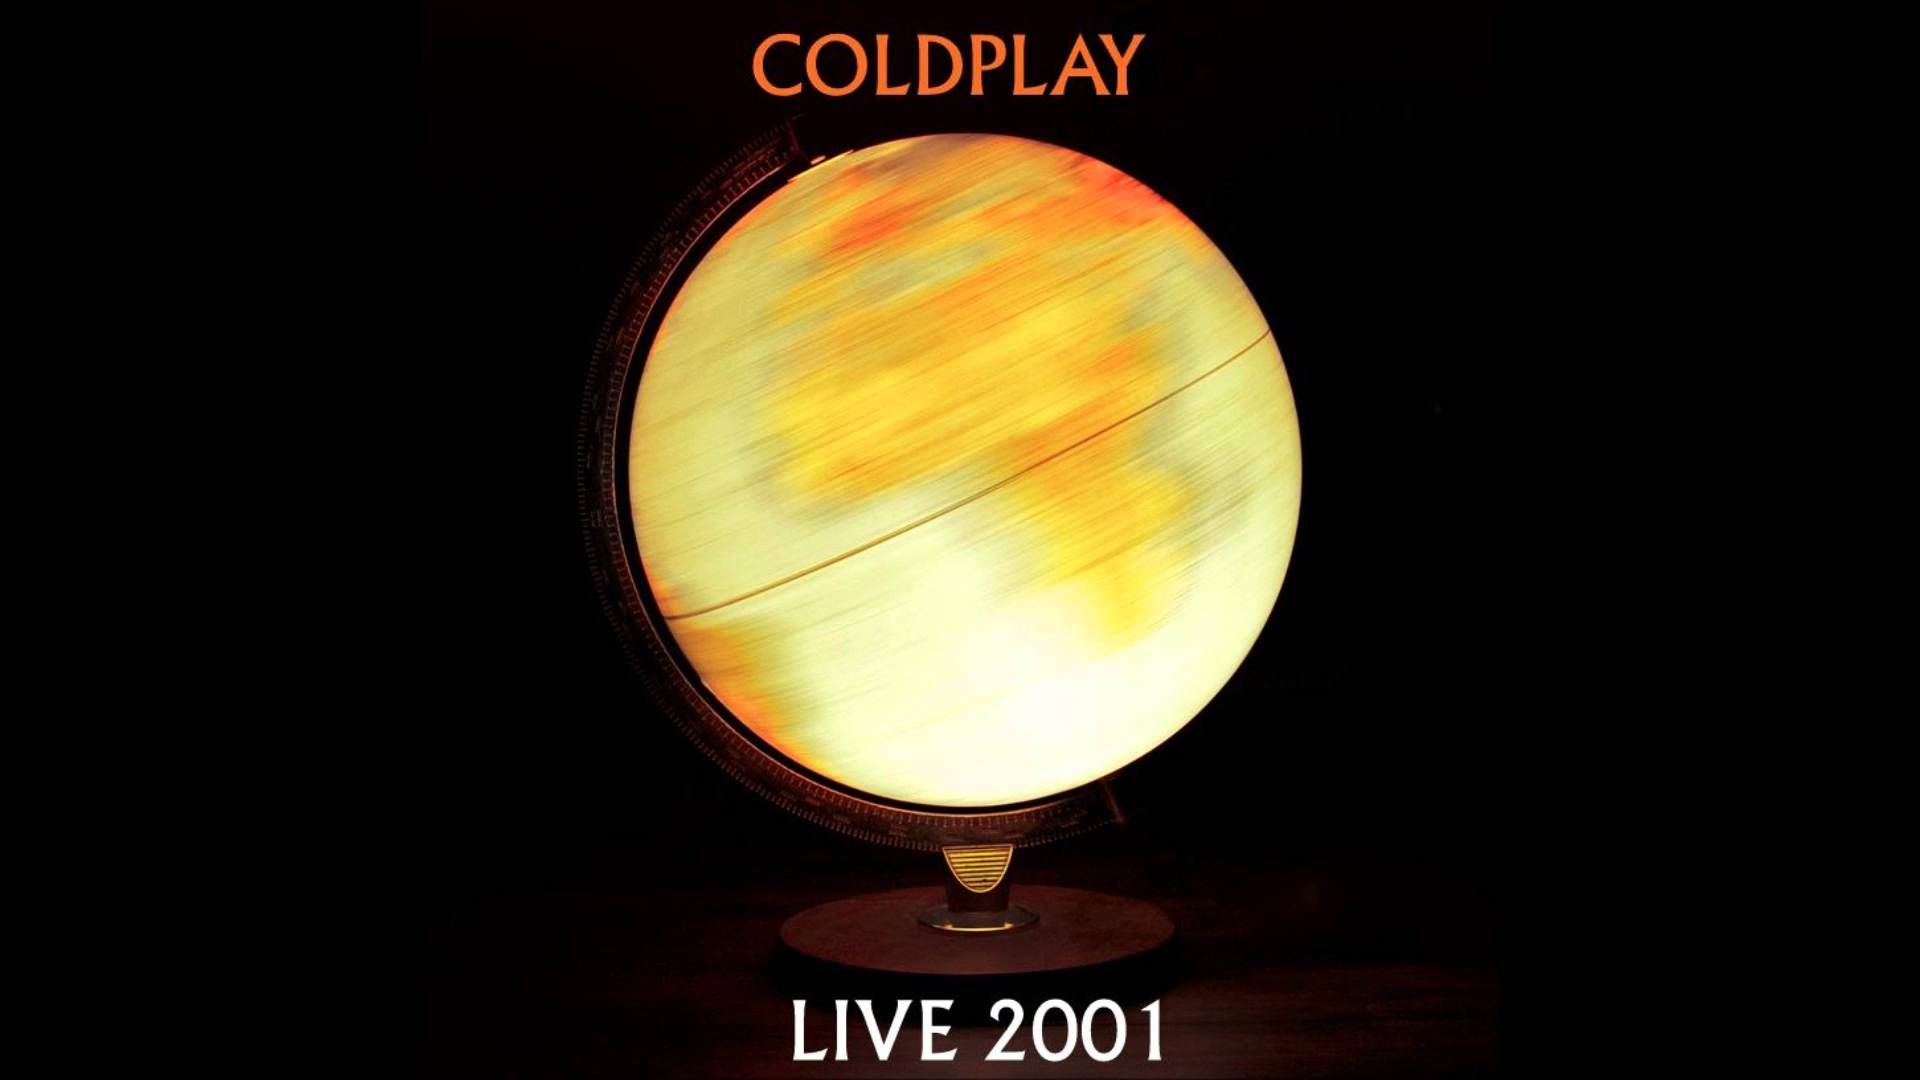 Coldplay parachutes live 2001 httpsyoutubewatch coldplay parachutes live 2001 httpsyoutube hexwebz Gallery